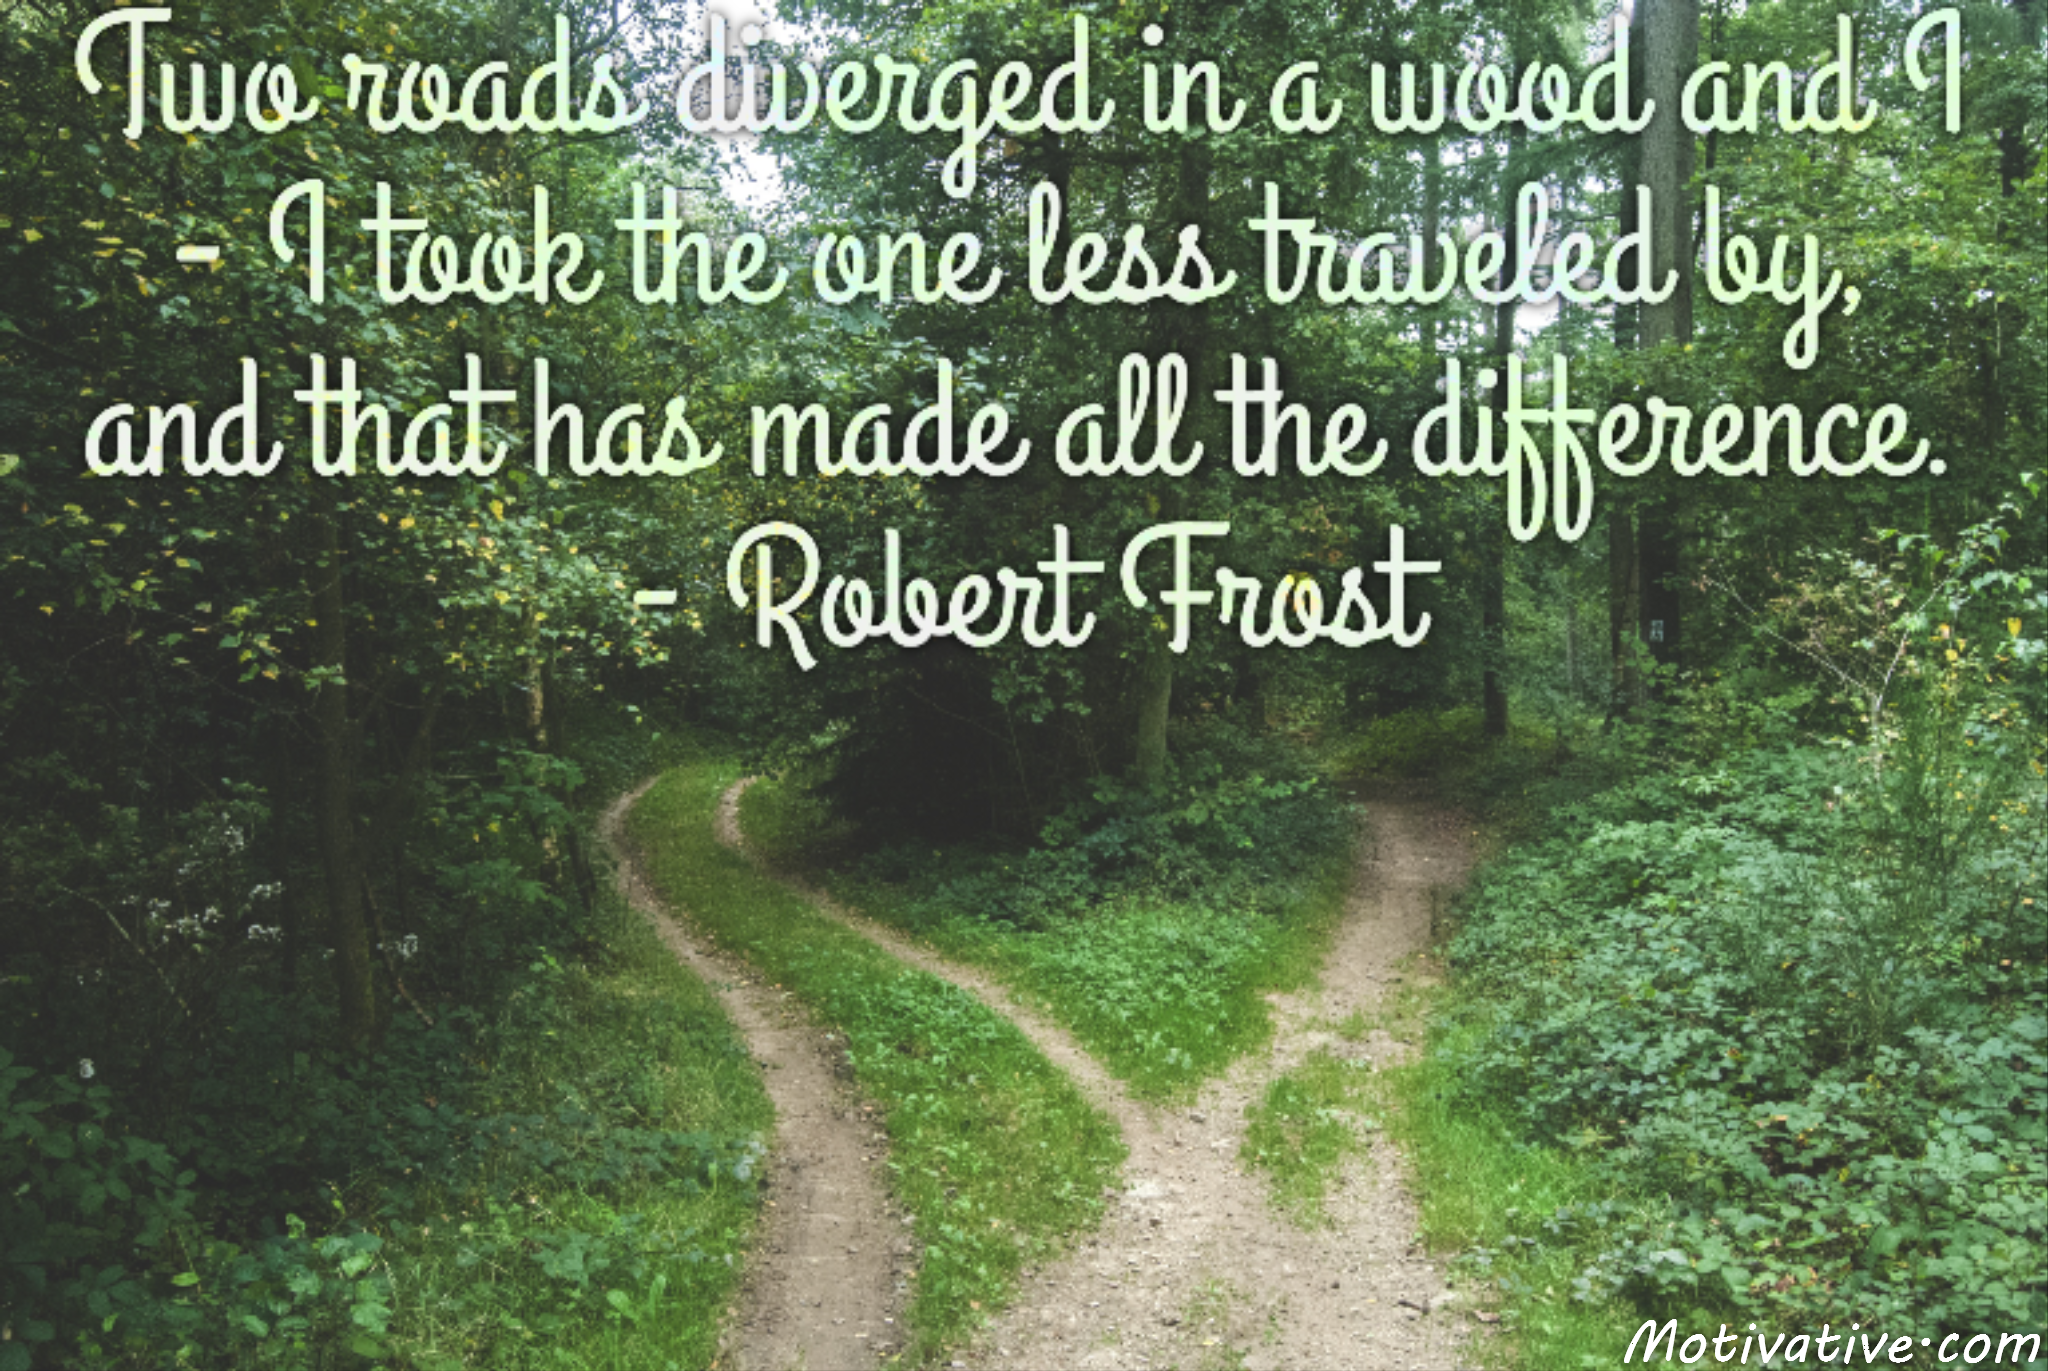 Two roads diverged in a wood and I – I took the one less traveled by, and that has made all the difference. – Robert Frost